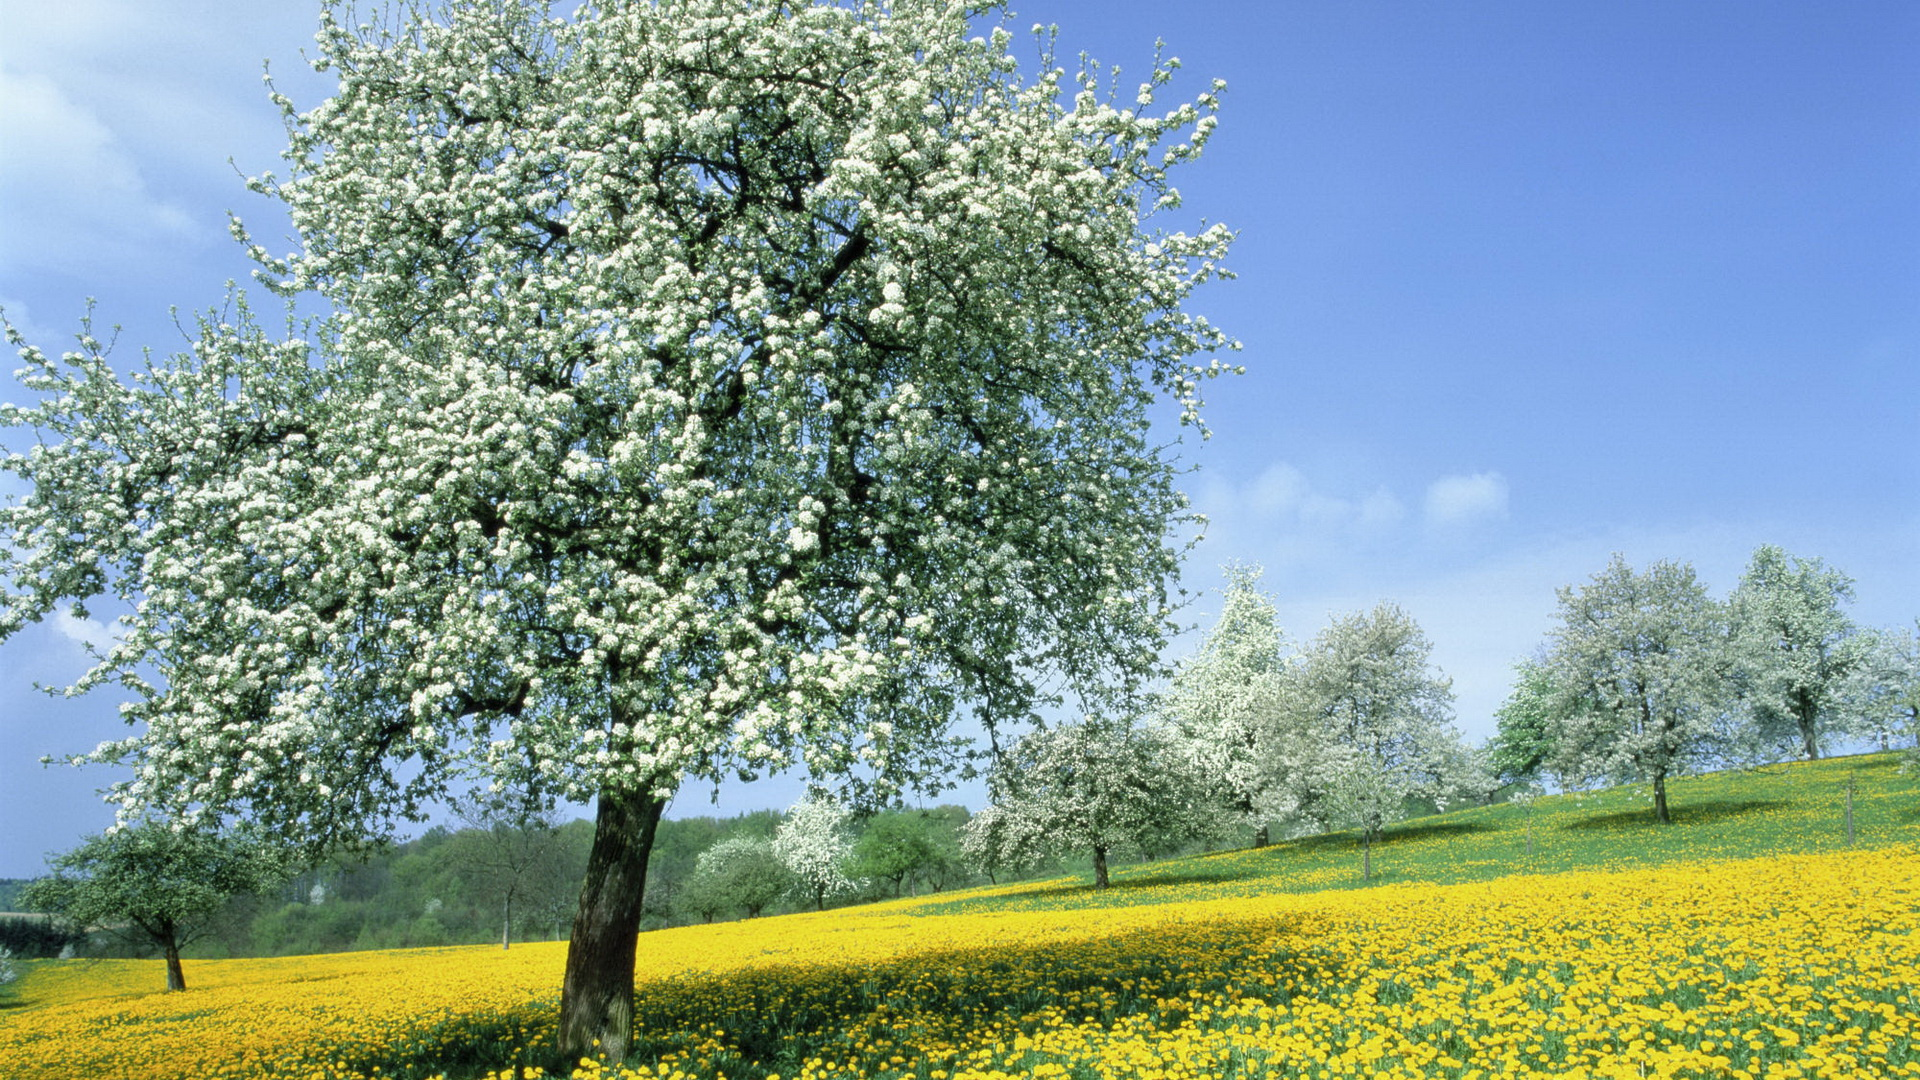 click to free download the wallpaper--Free Download Natural Scenery Picture - Numerous Trees in White Flowers and Rape Flowers, the Blue Sky, Great in Look 1920X1080 free wallpaper download